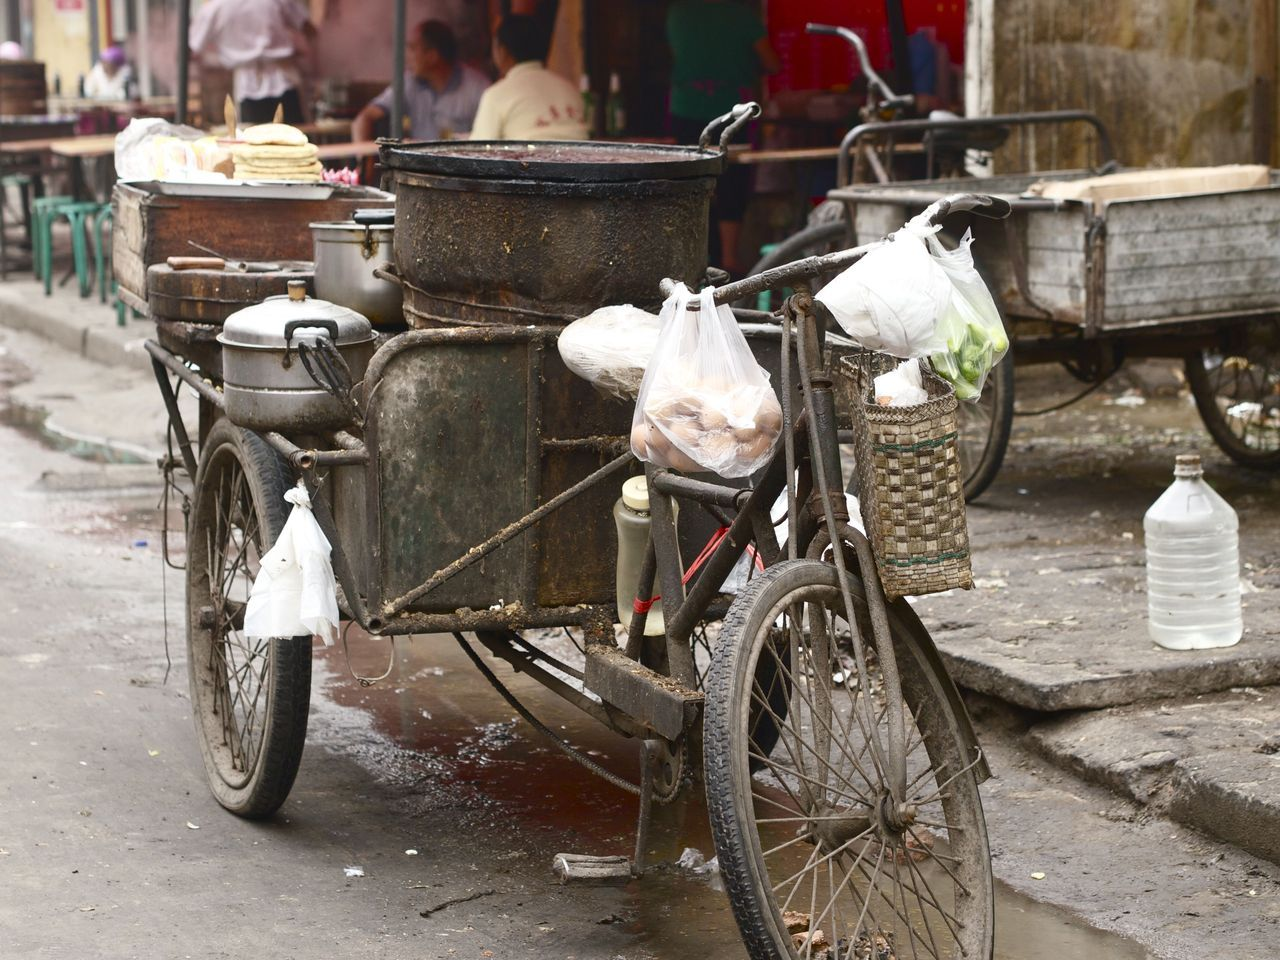 A Handan street vendor's Rickshaw. Again, I would love to hear the stories this rickshaw would tell if only it could…